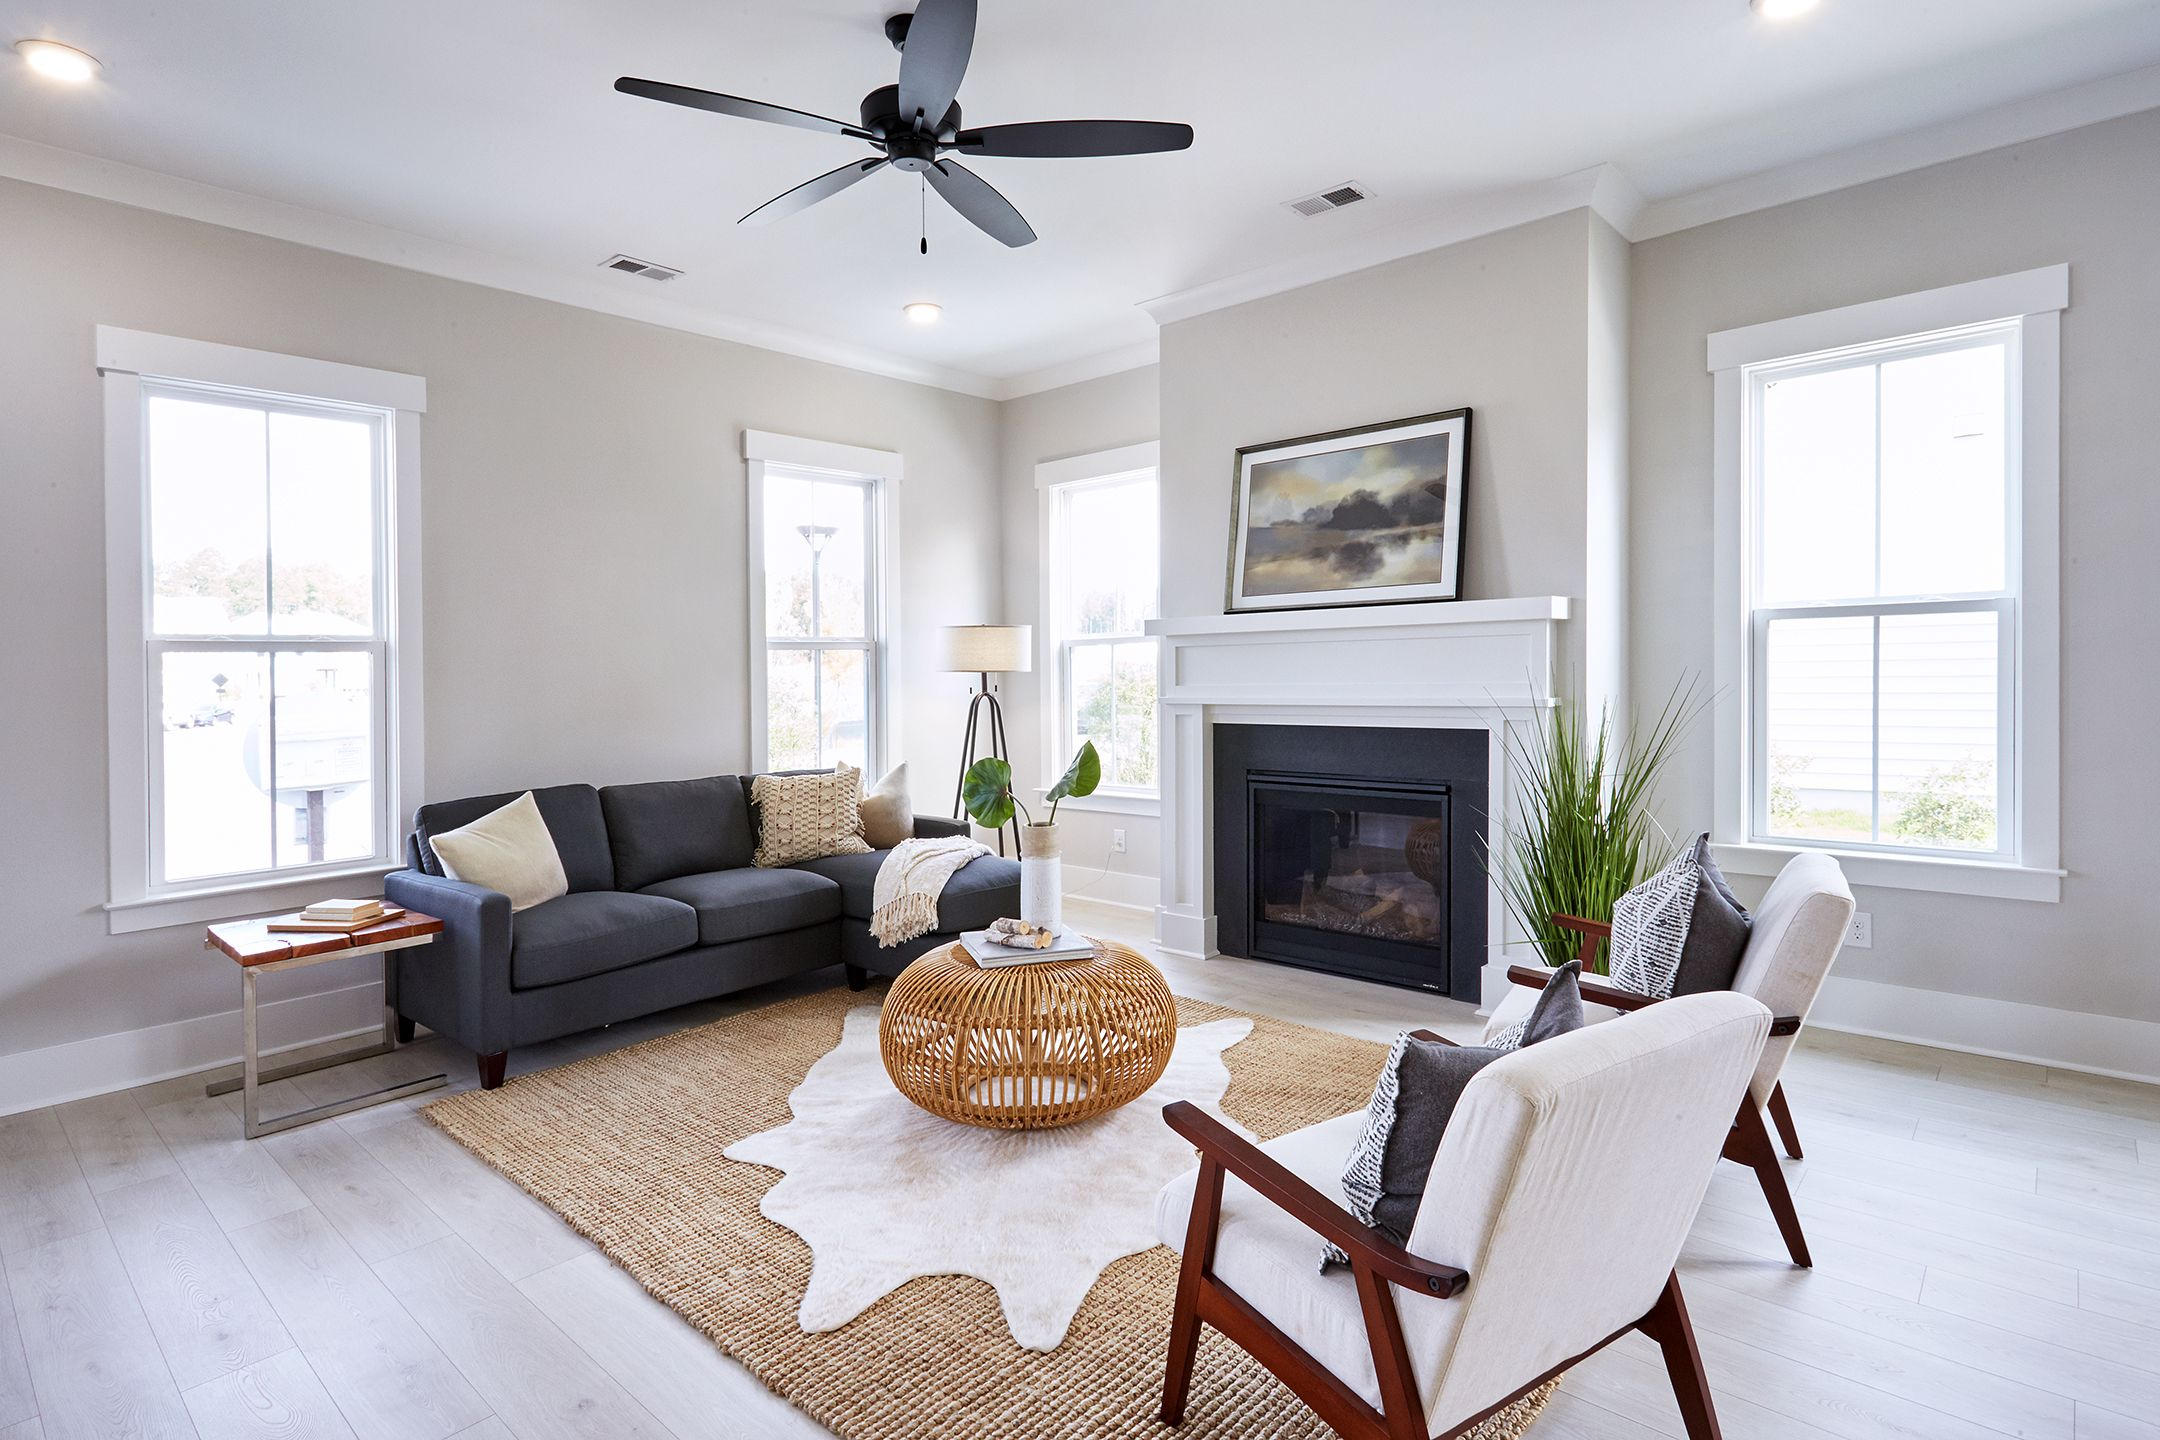 Living Area featured in the Rutledge By Homes by Dickerson in Charleston, SC